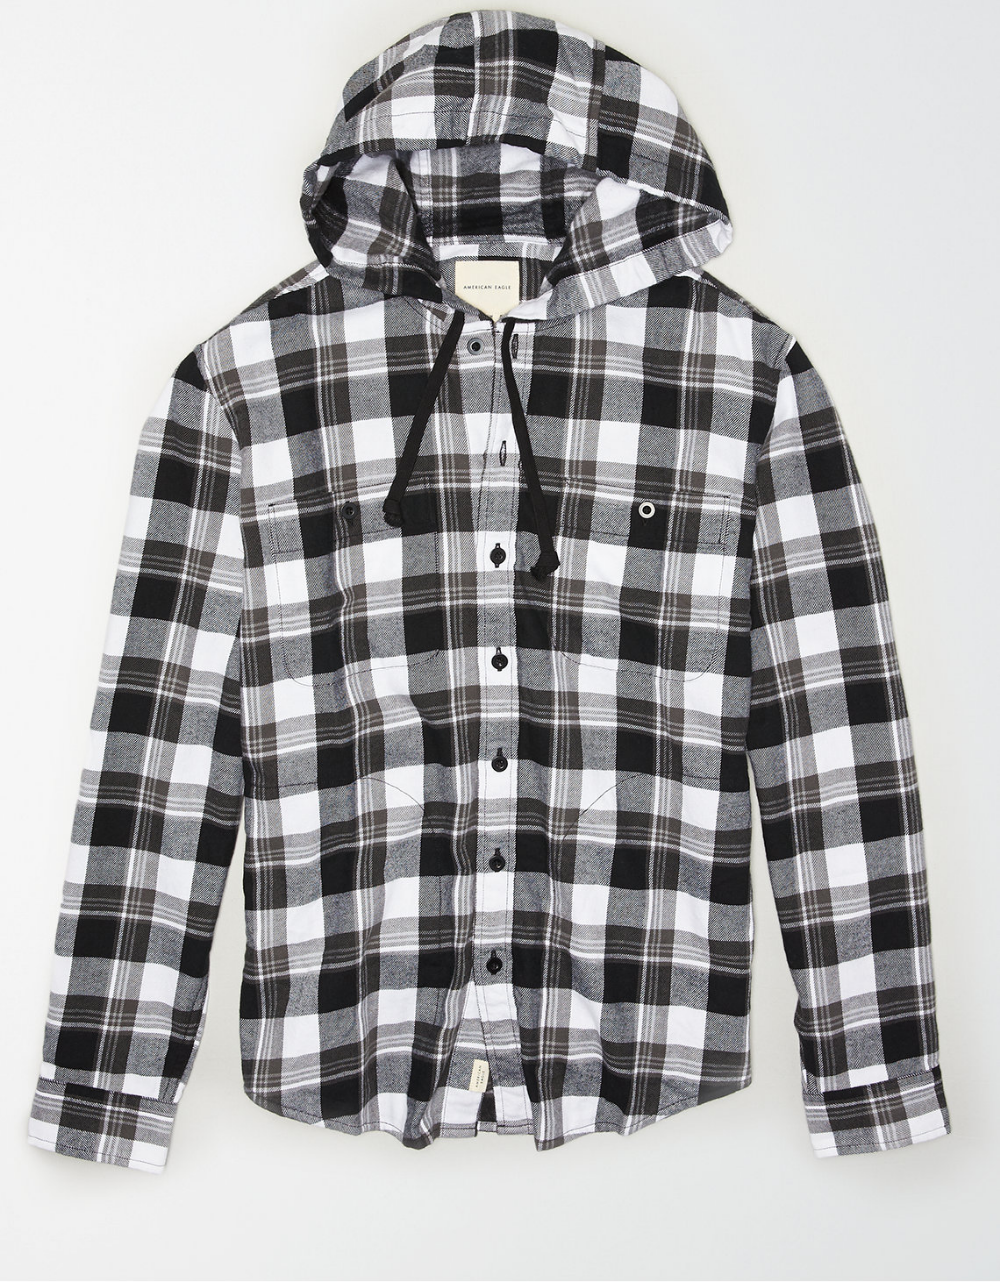 Ae Flannel Hooded Shirt Mens Outfitters Casual Shirts For Men Hooded Shirt [ 1282 x 1000 Pixel ]